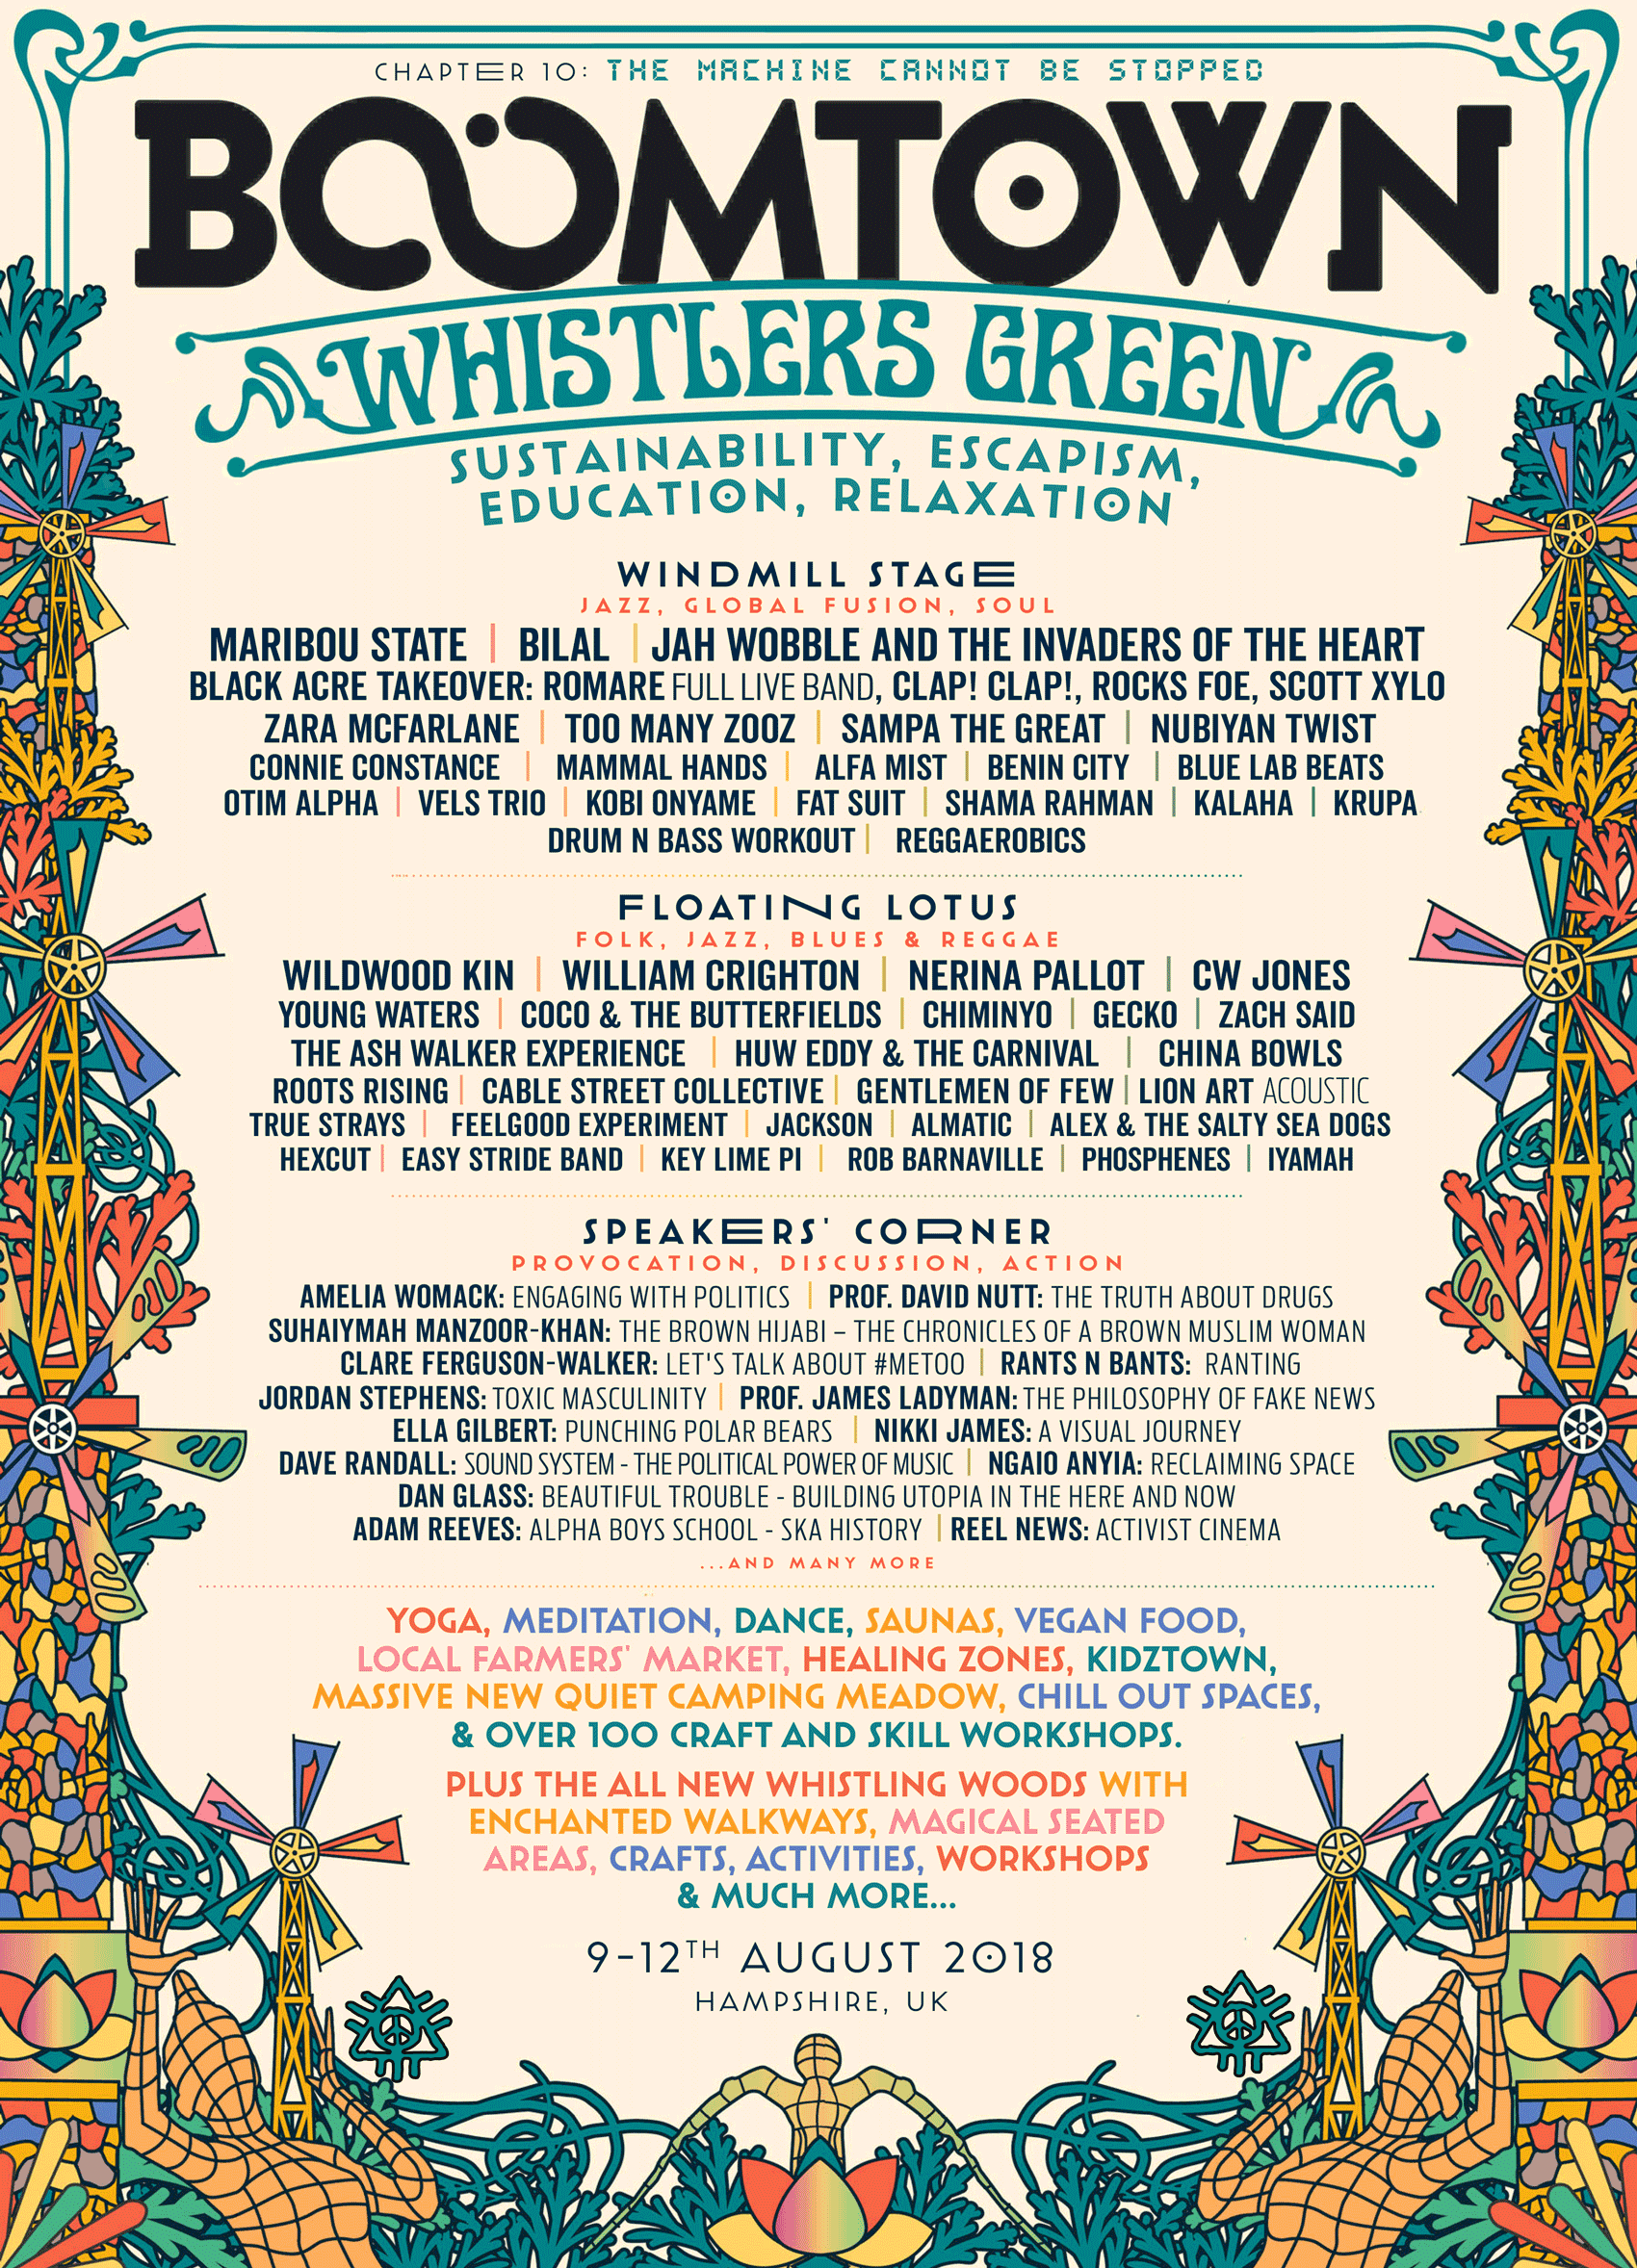 BoomTown 2018 Whistlers Green Line Up